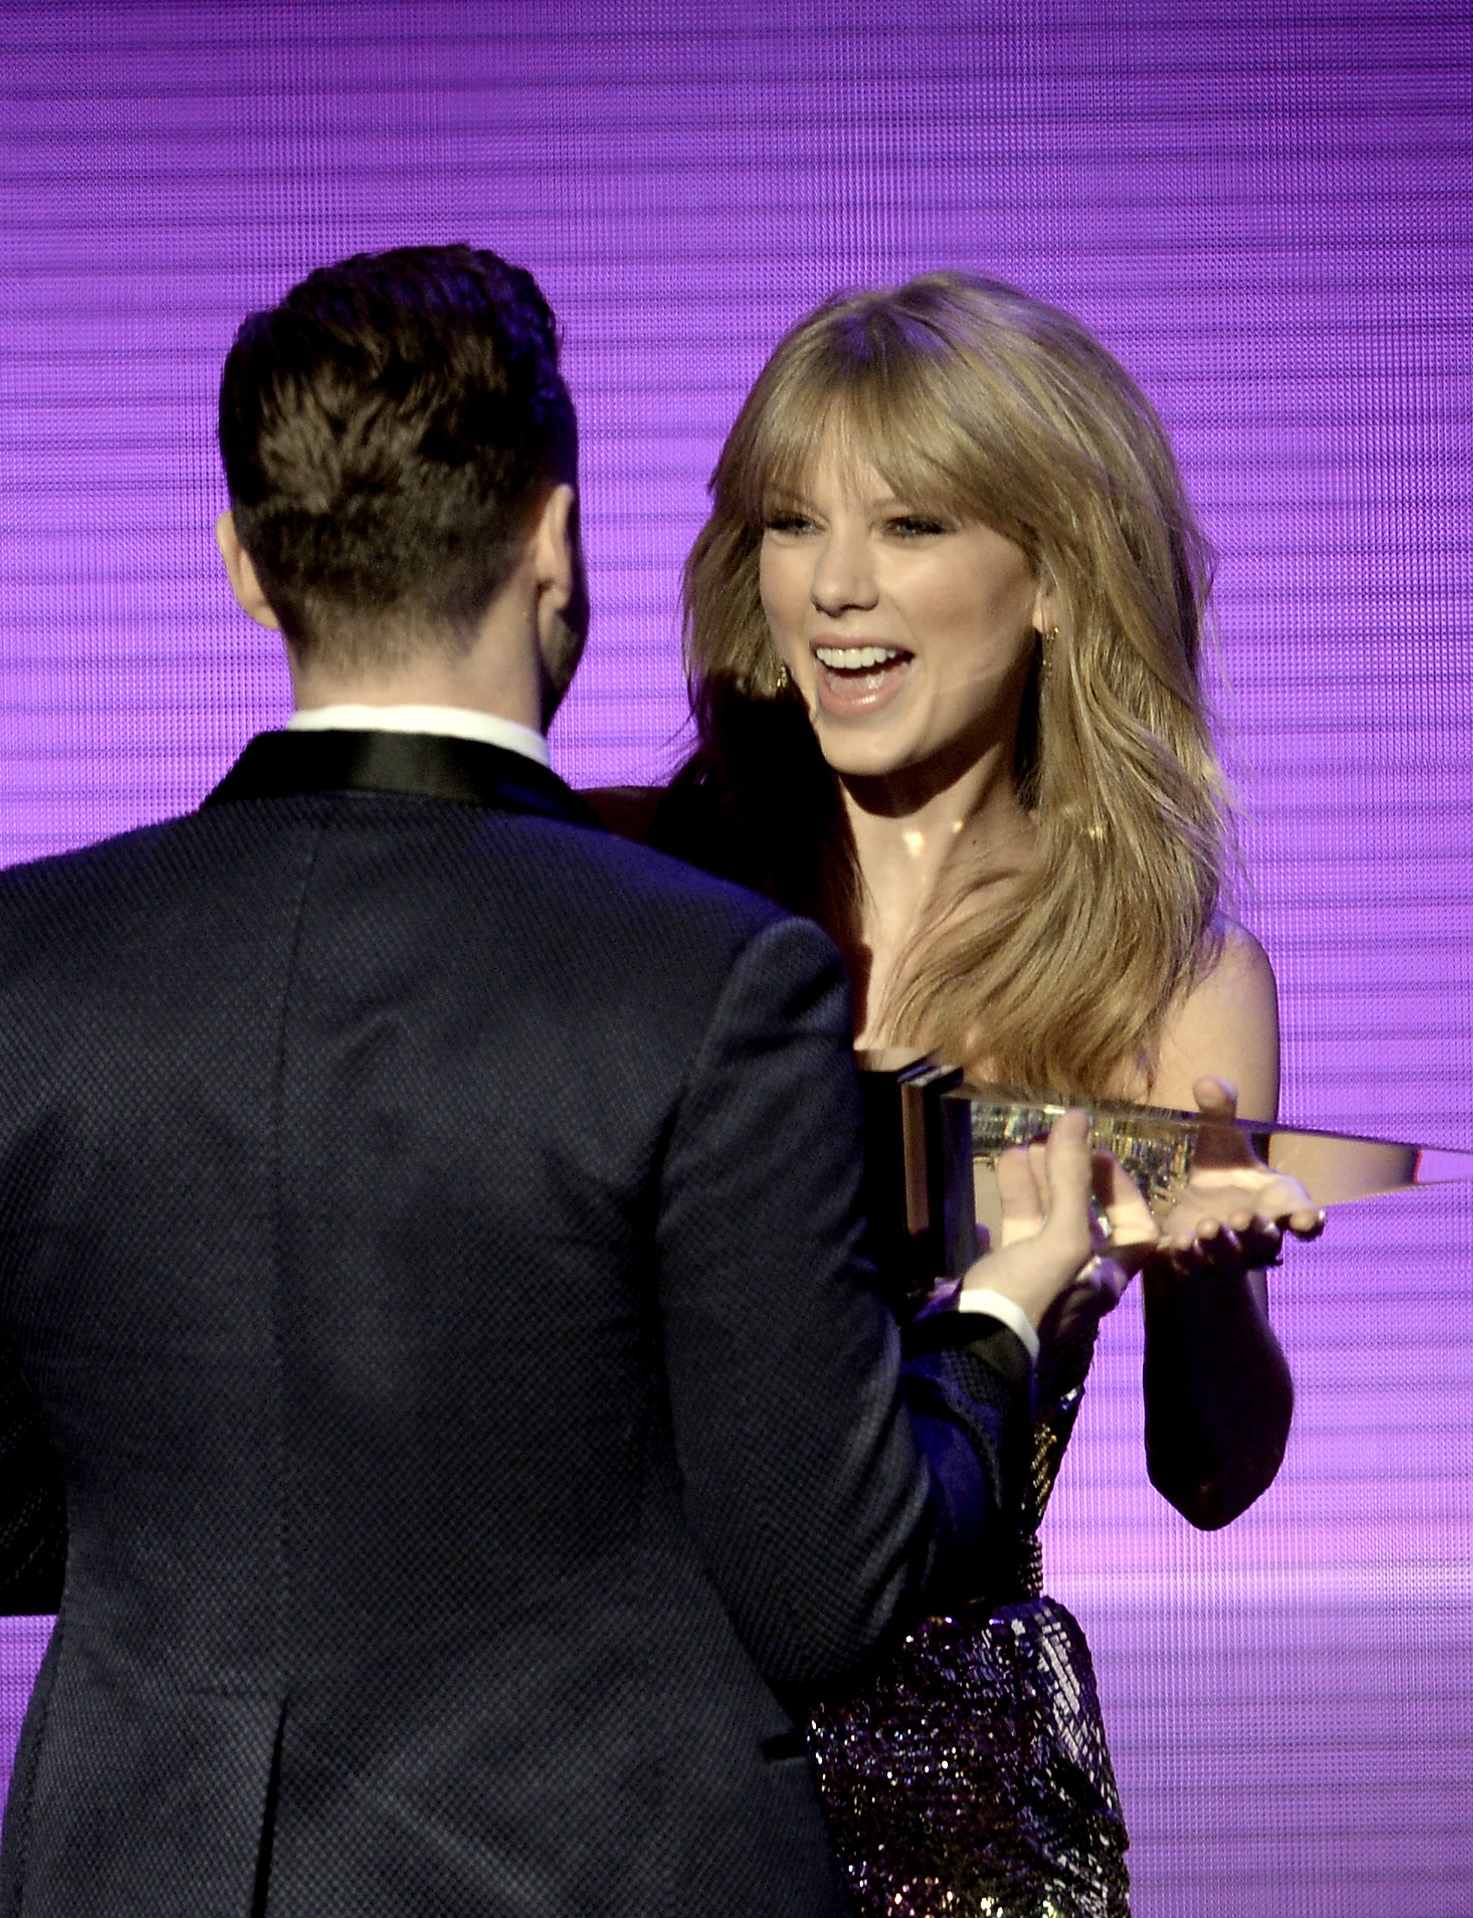 http://taylorpictures.net/albums/app/2013/americanmusicawards/077.jpg